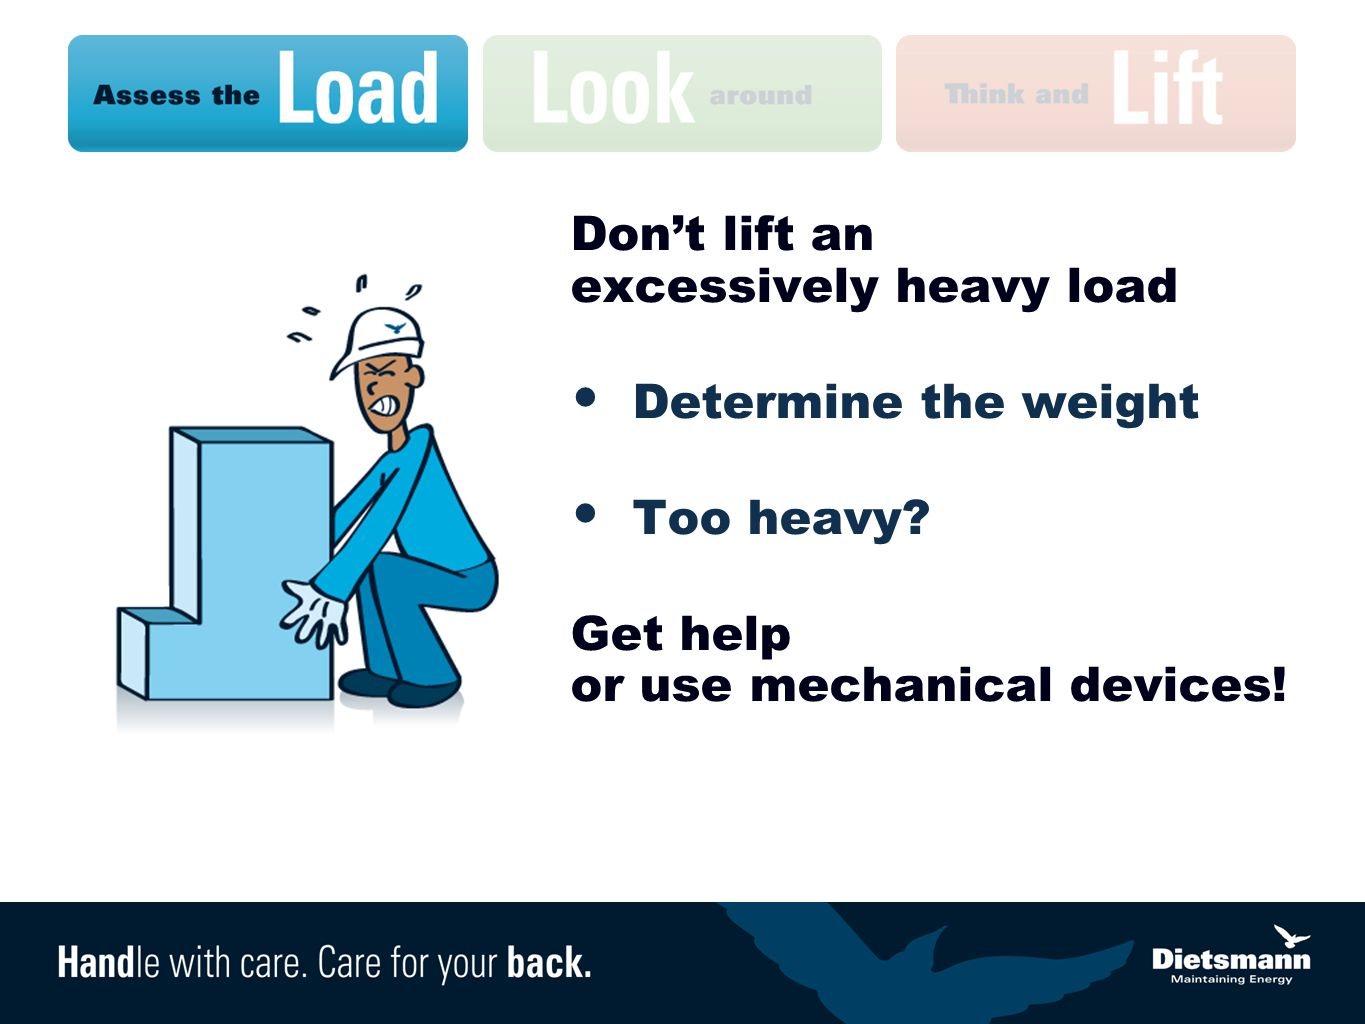 Don't lift an excessively heavy load